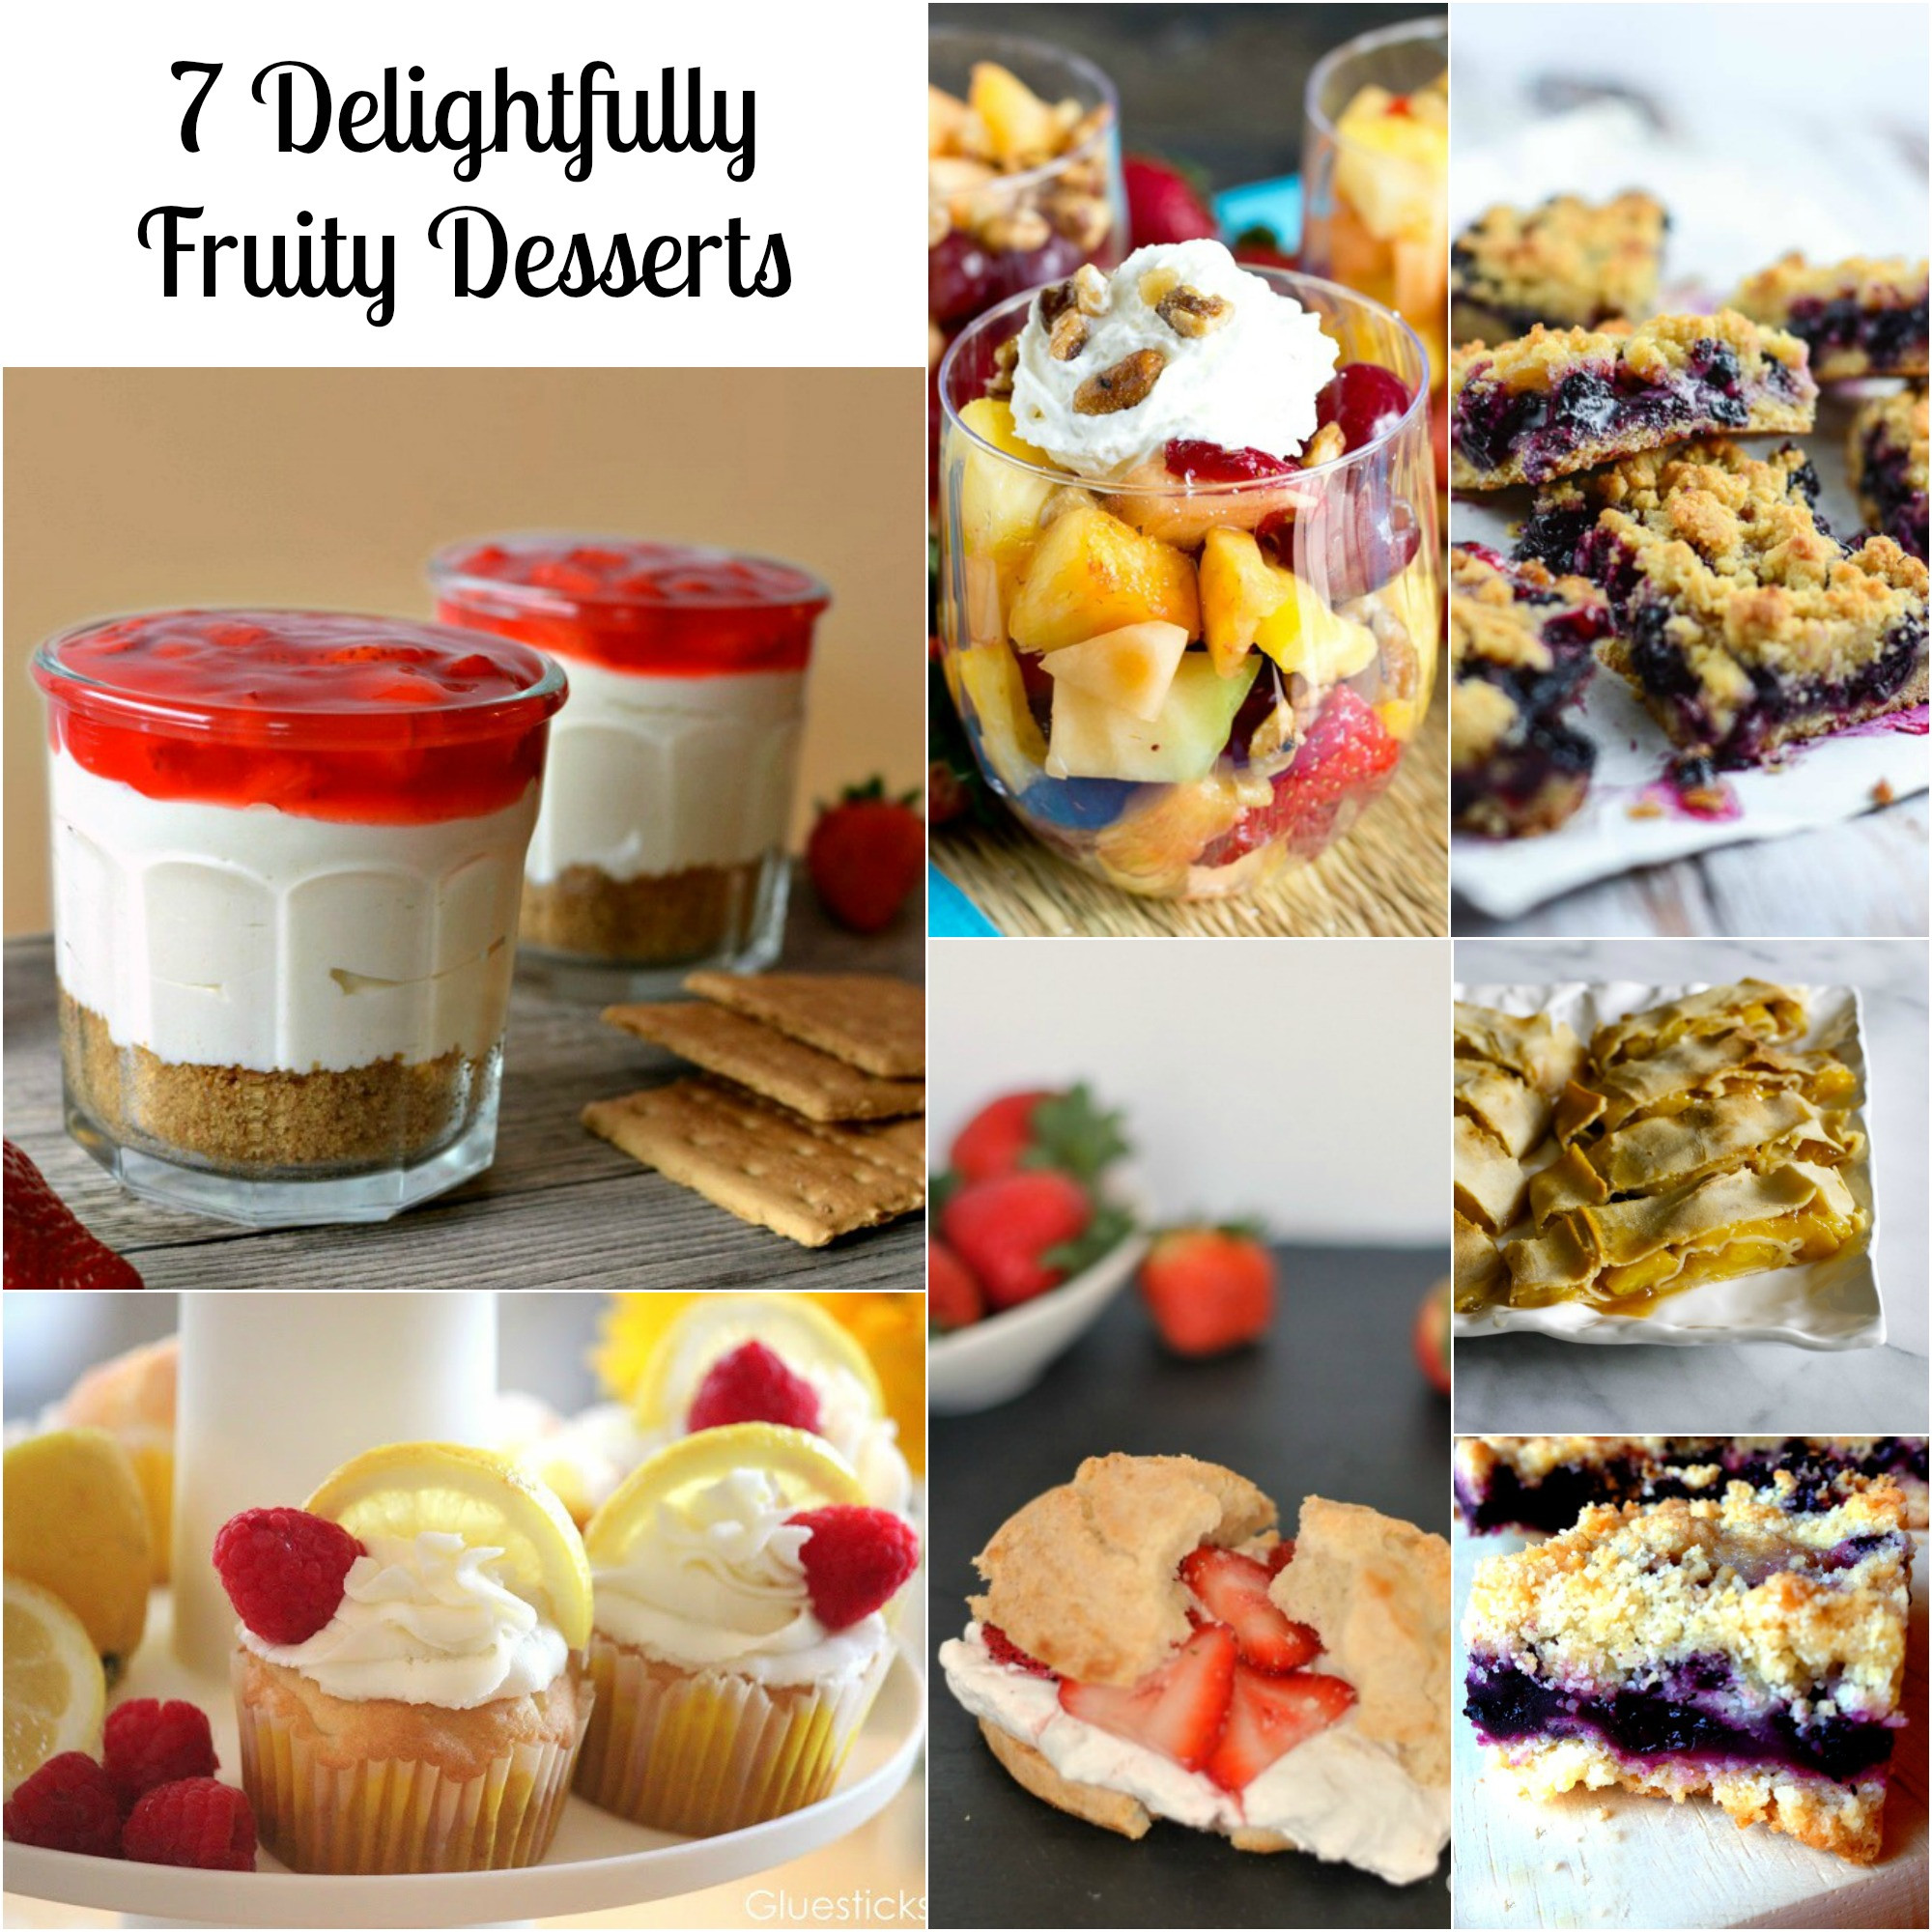 Summer Desserts Ideas  7 Summer Dessert Recipes You Have to Try SoFabFood